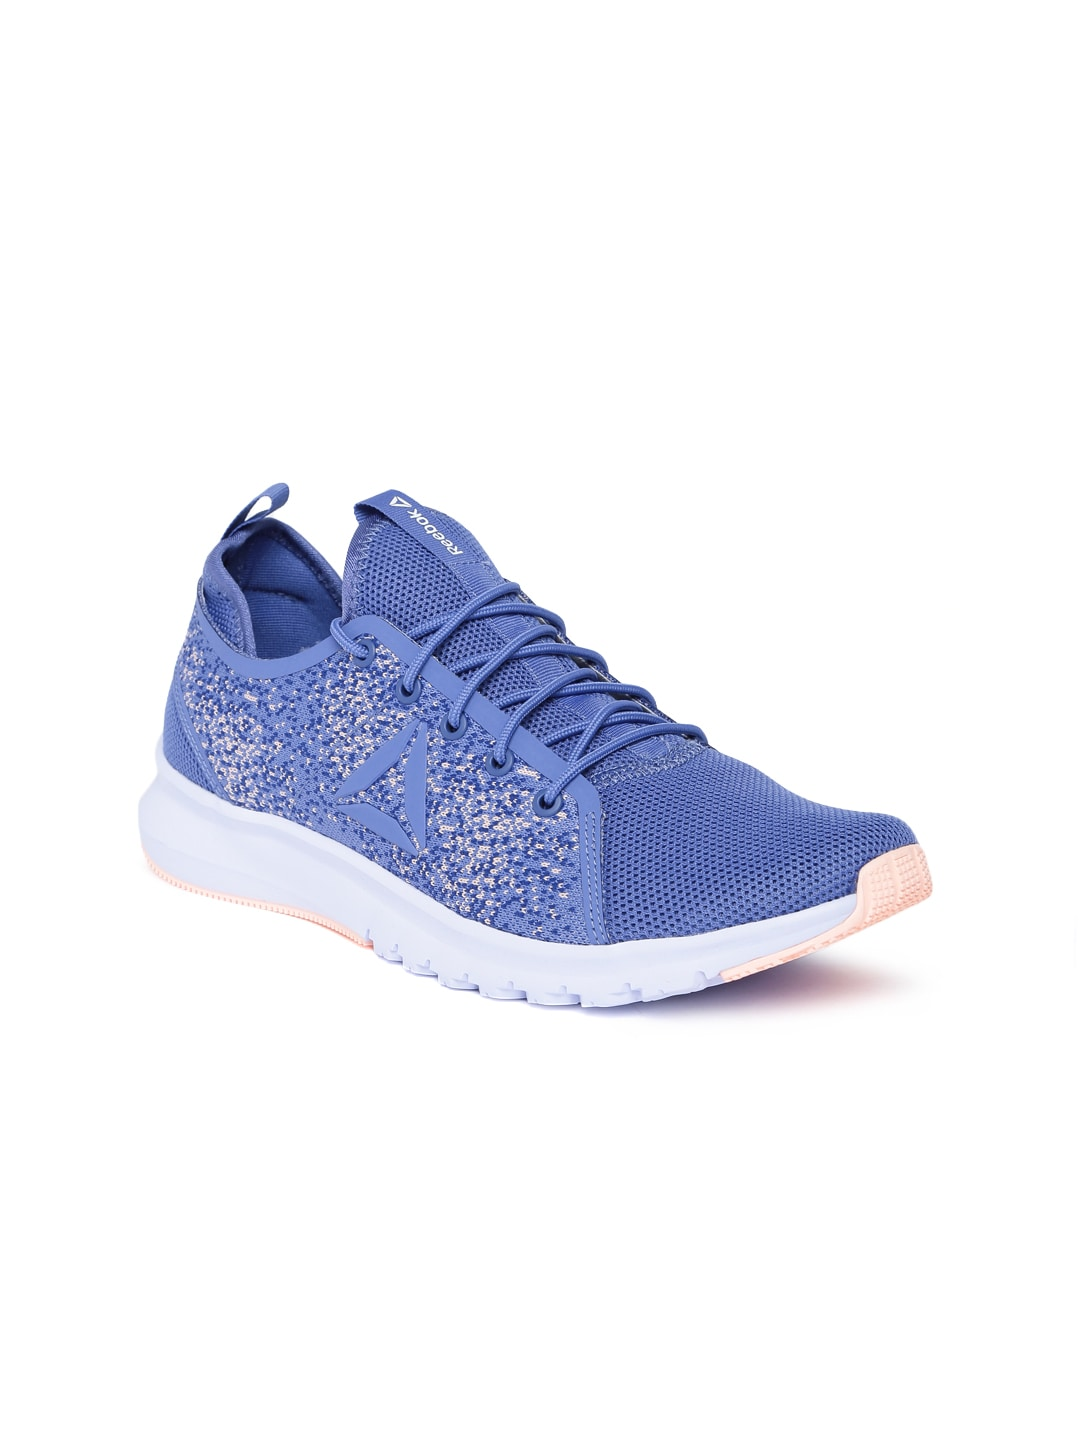 Reebok Lite Sprint Shoes - Buy Reebok Lite Sprint Shoes online in India ab79d3b60